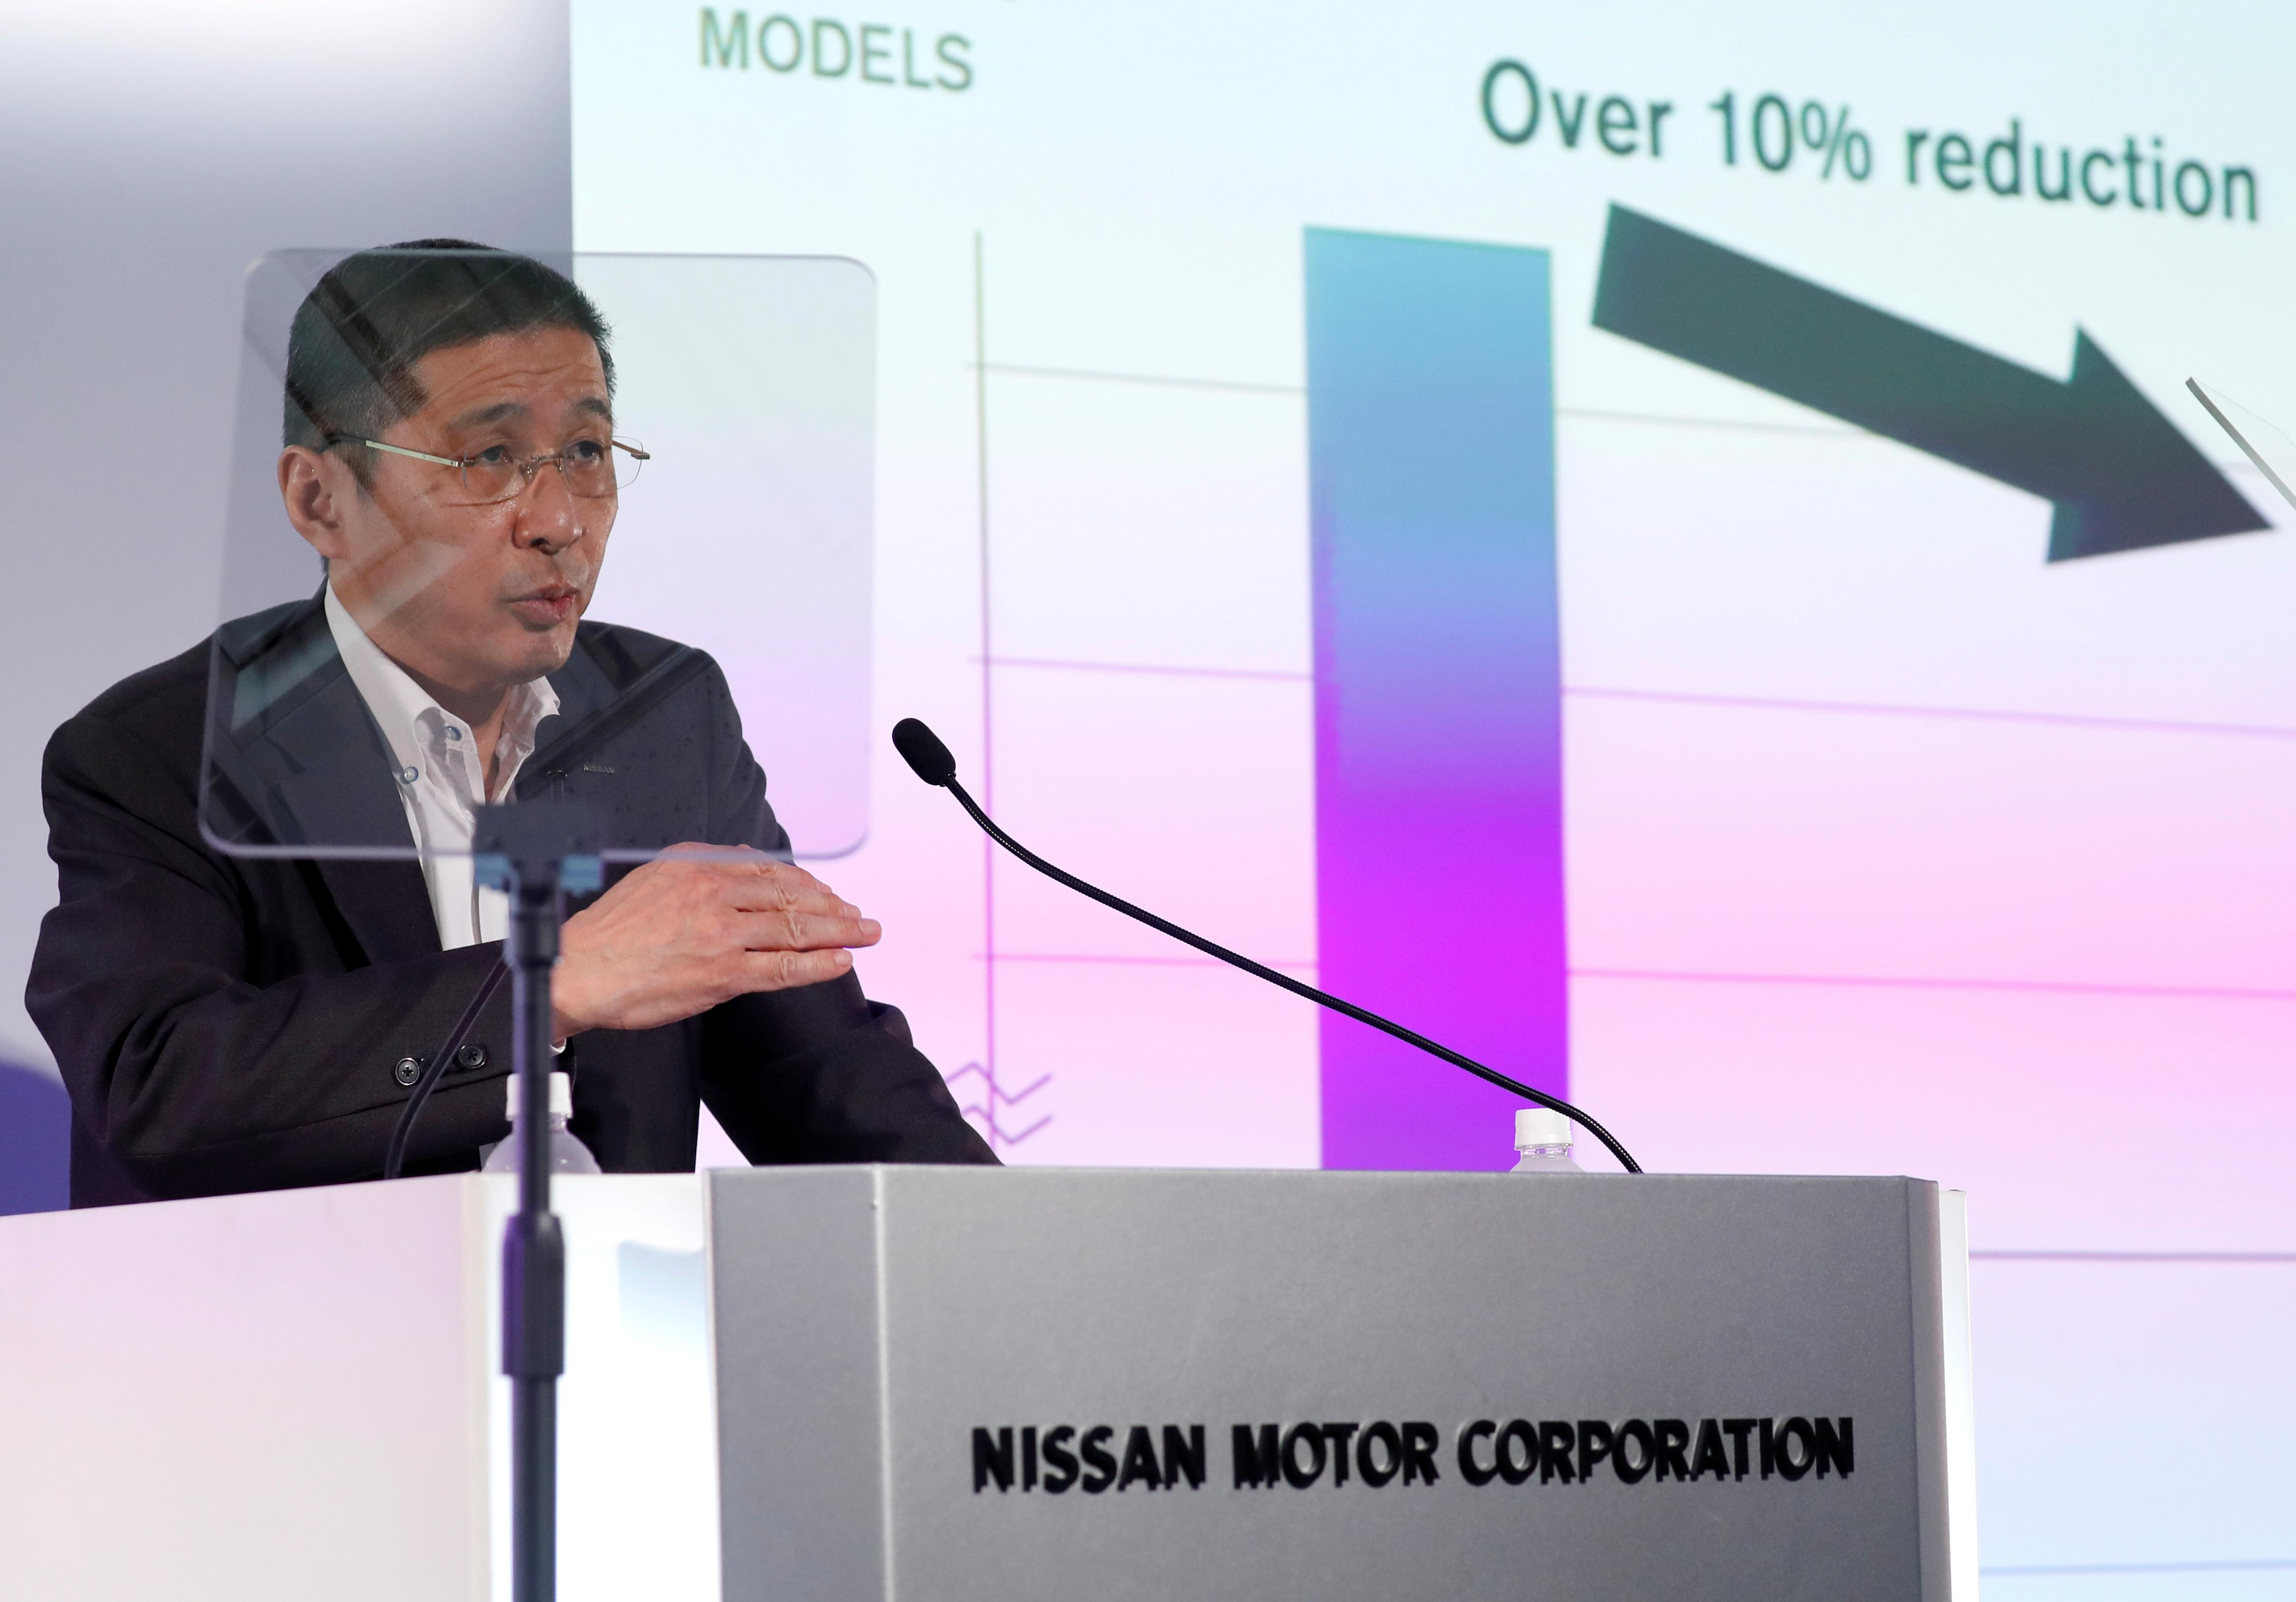 Nissan to cut 12,500 jobs as crisis deepens after profit wipe out